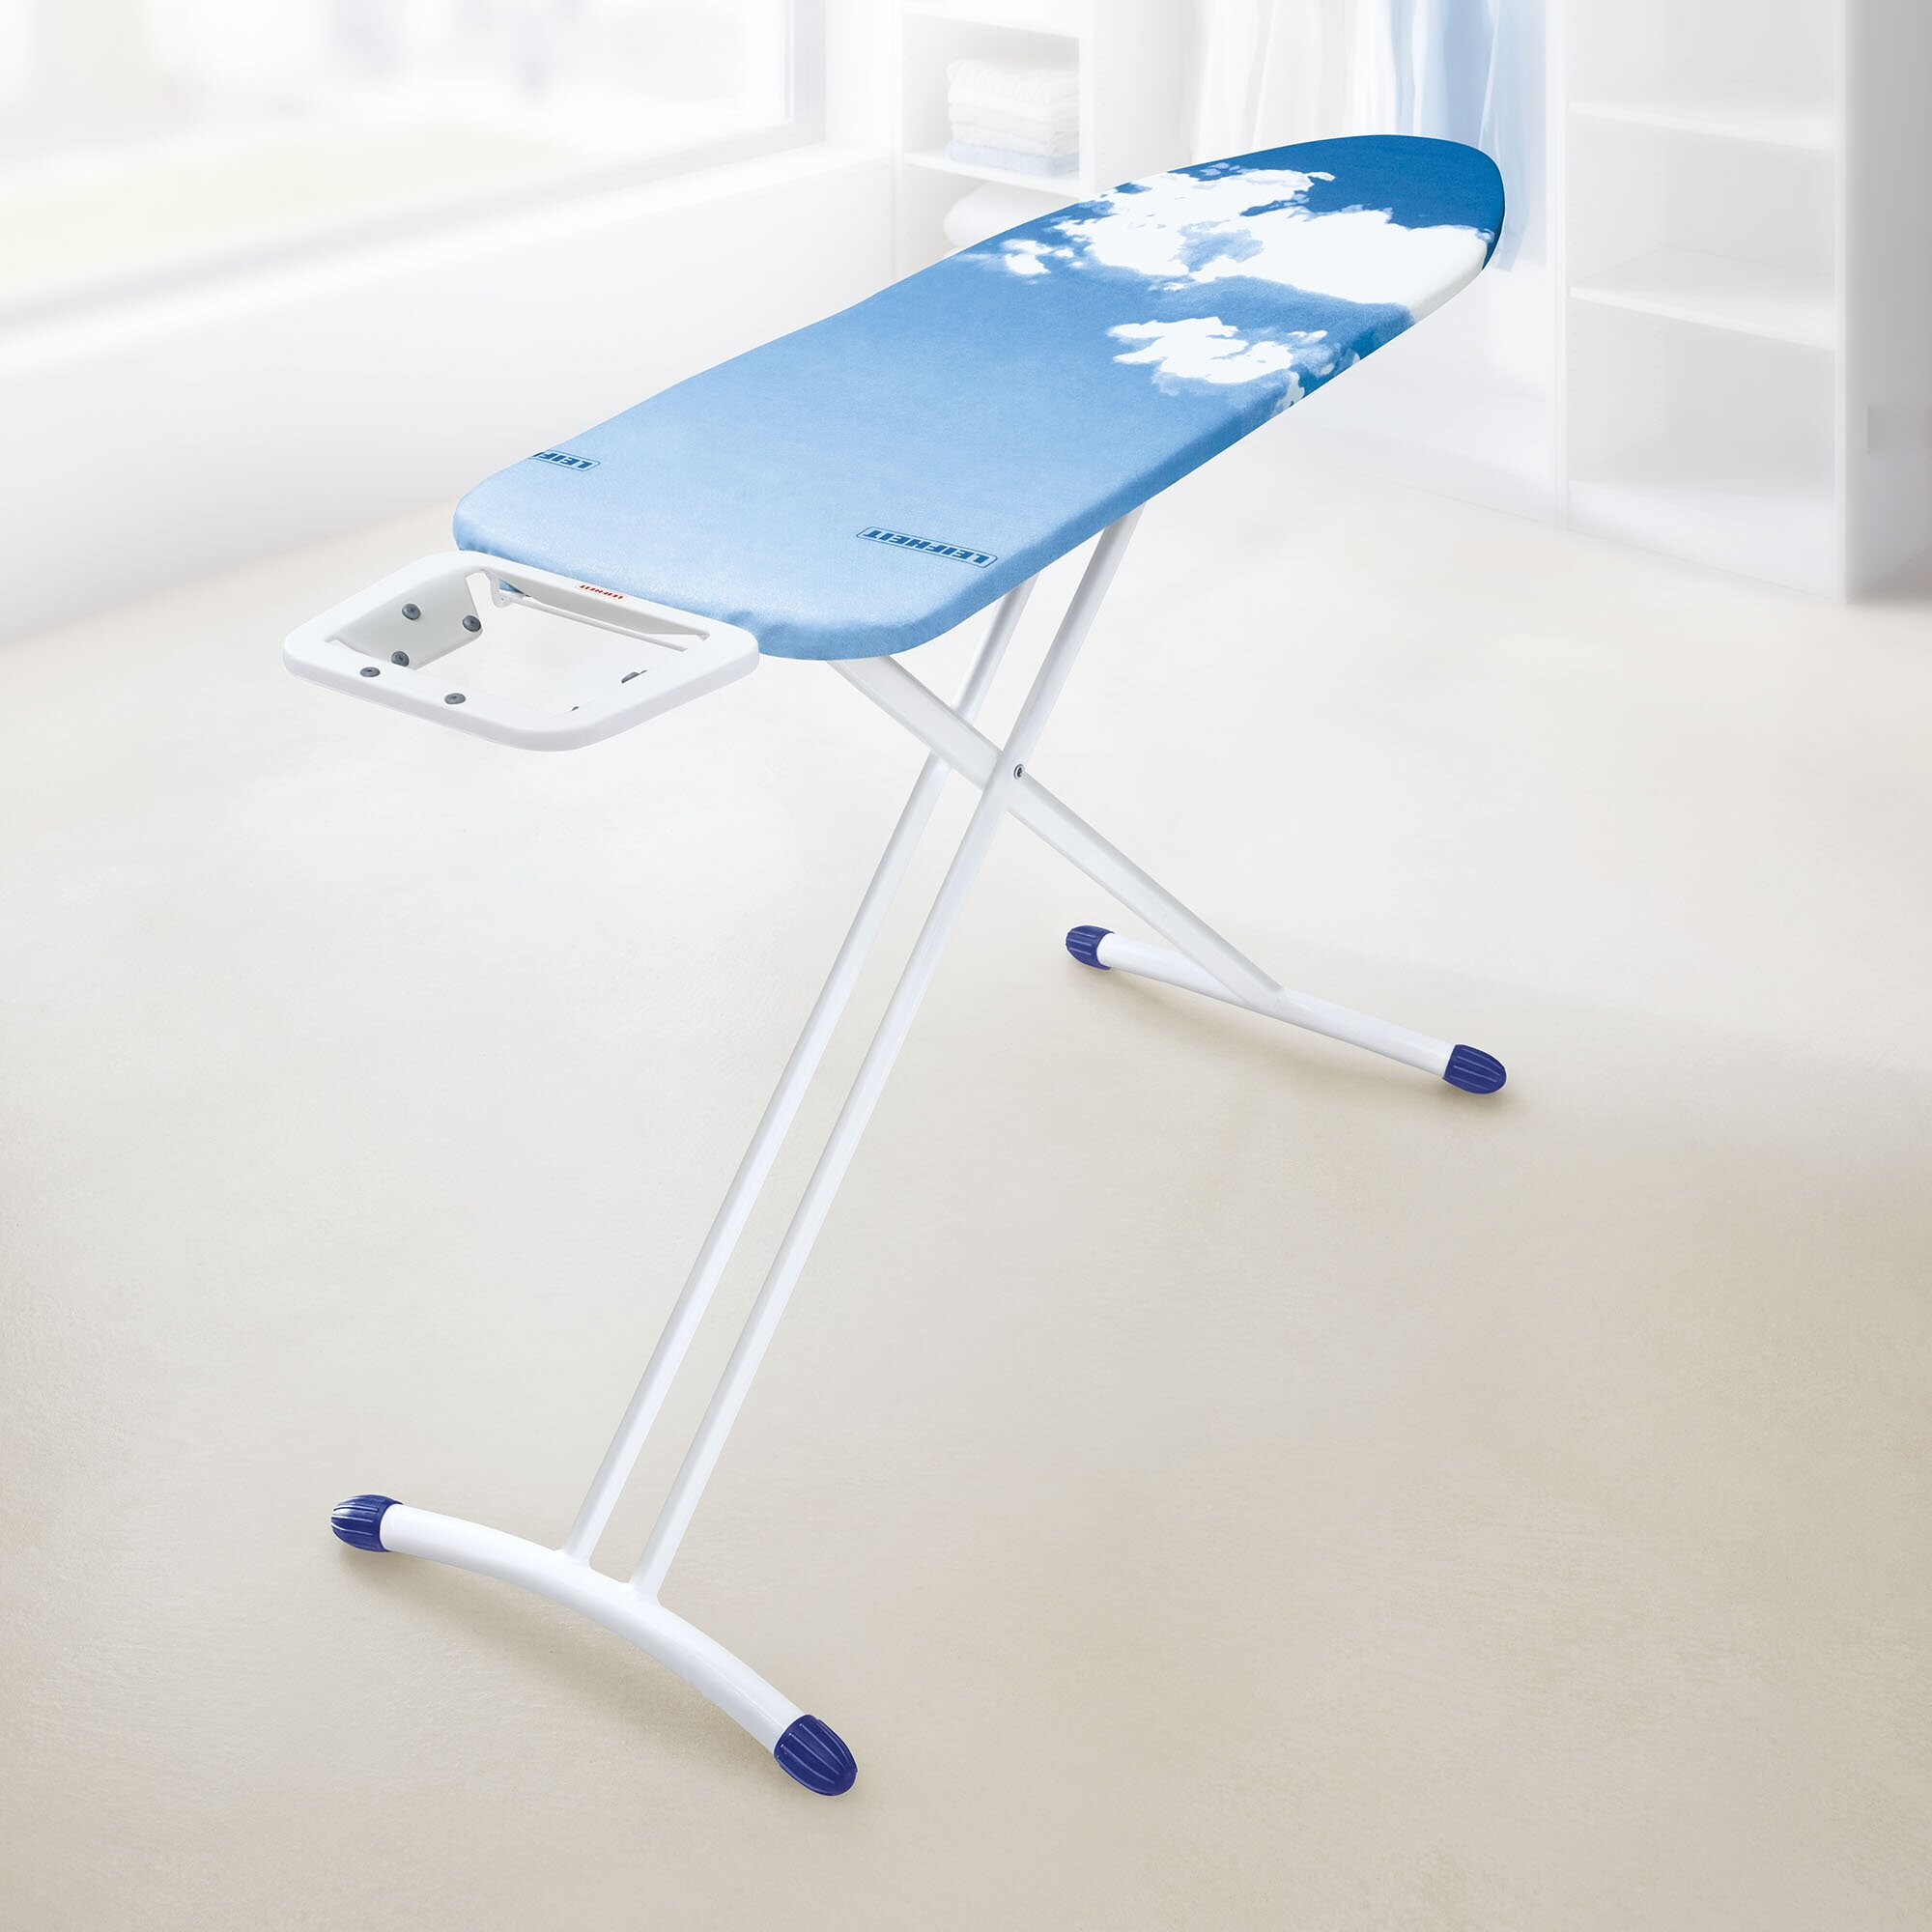 leifheit airboard premium lightweight thermo reflect ironing board reviews wayfair. Black Bedroom Furniture Sets. Home Design Ideas